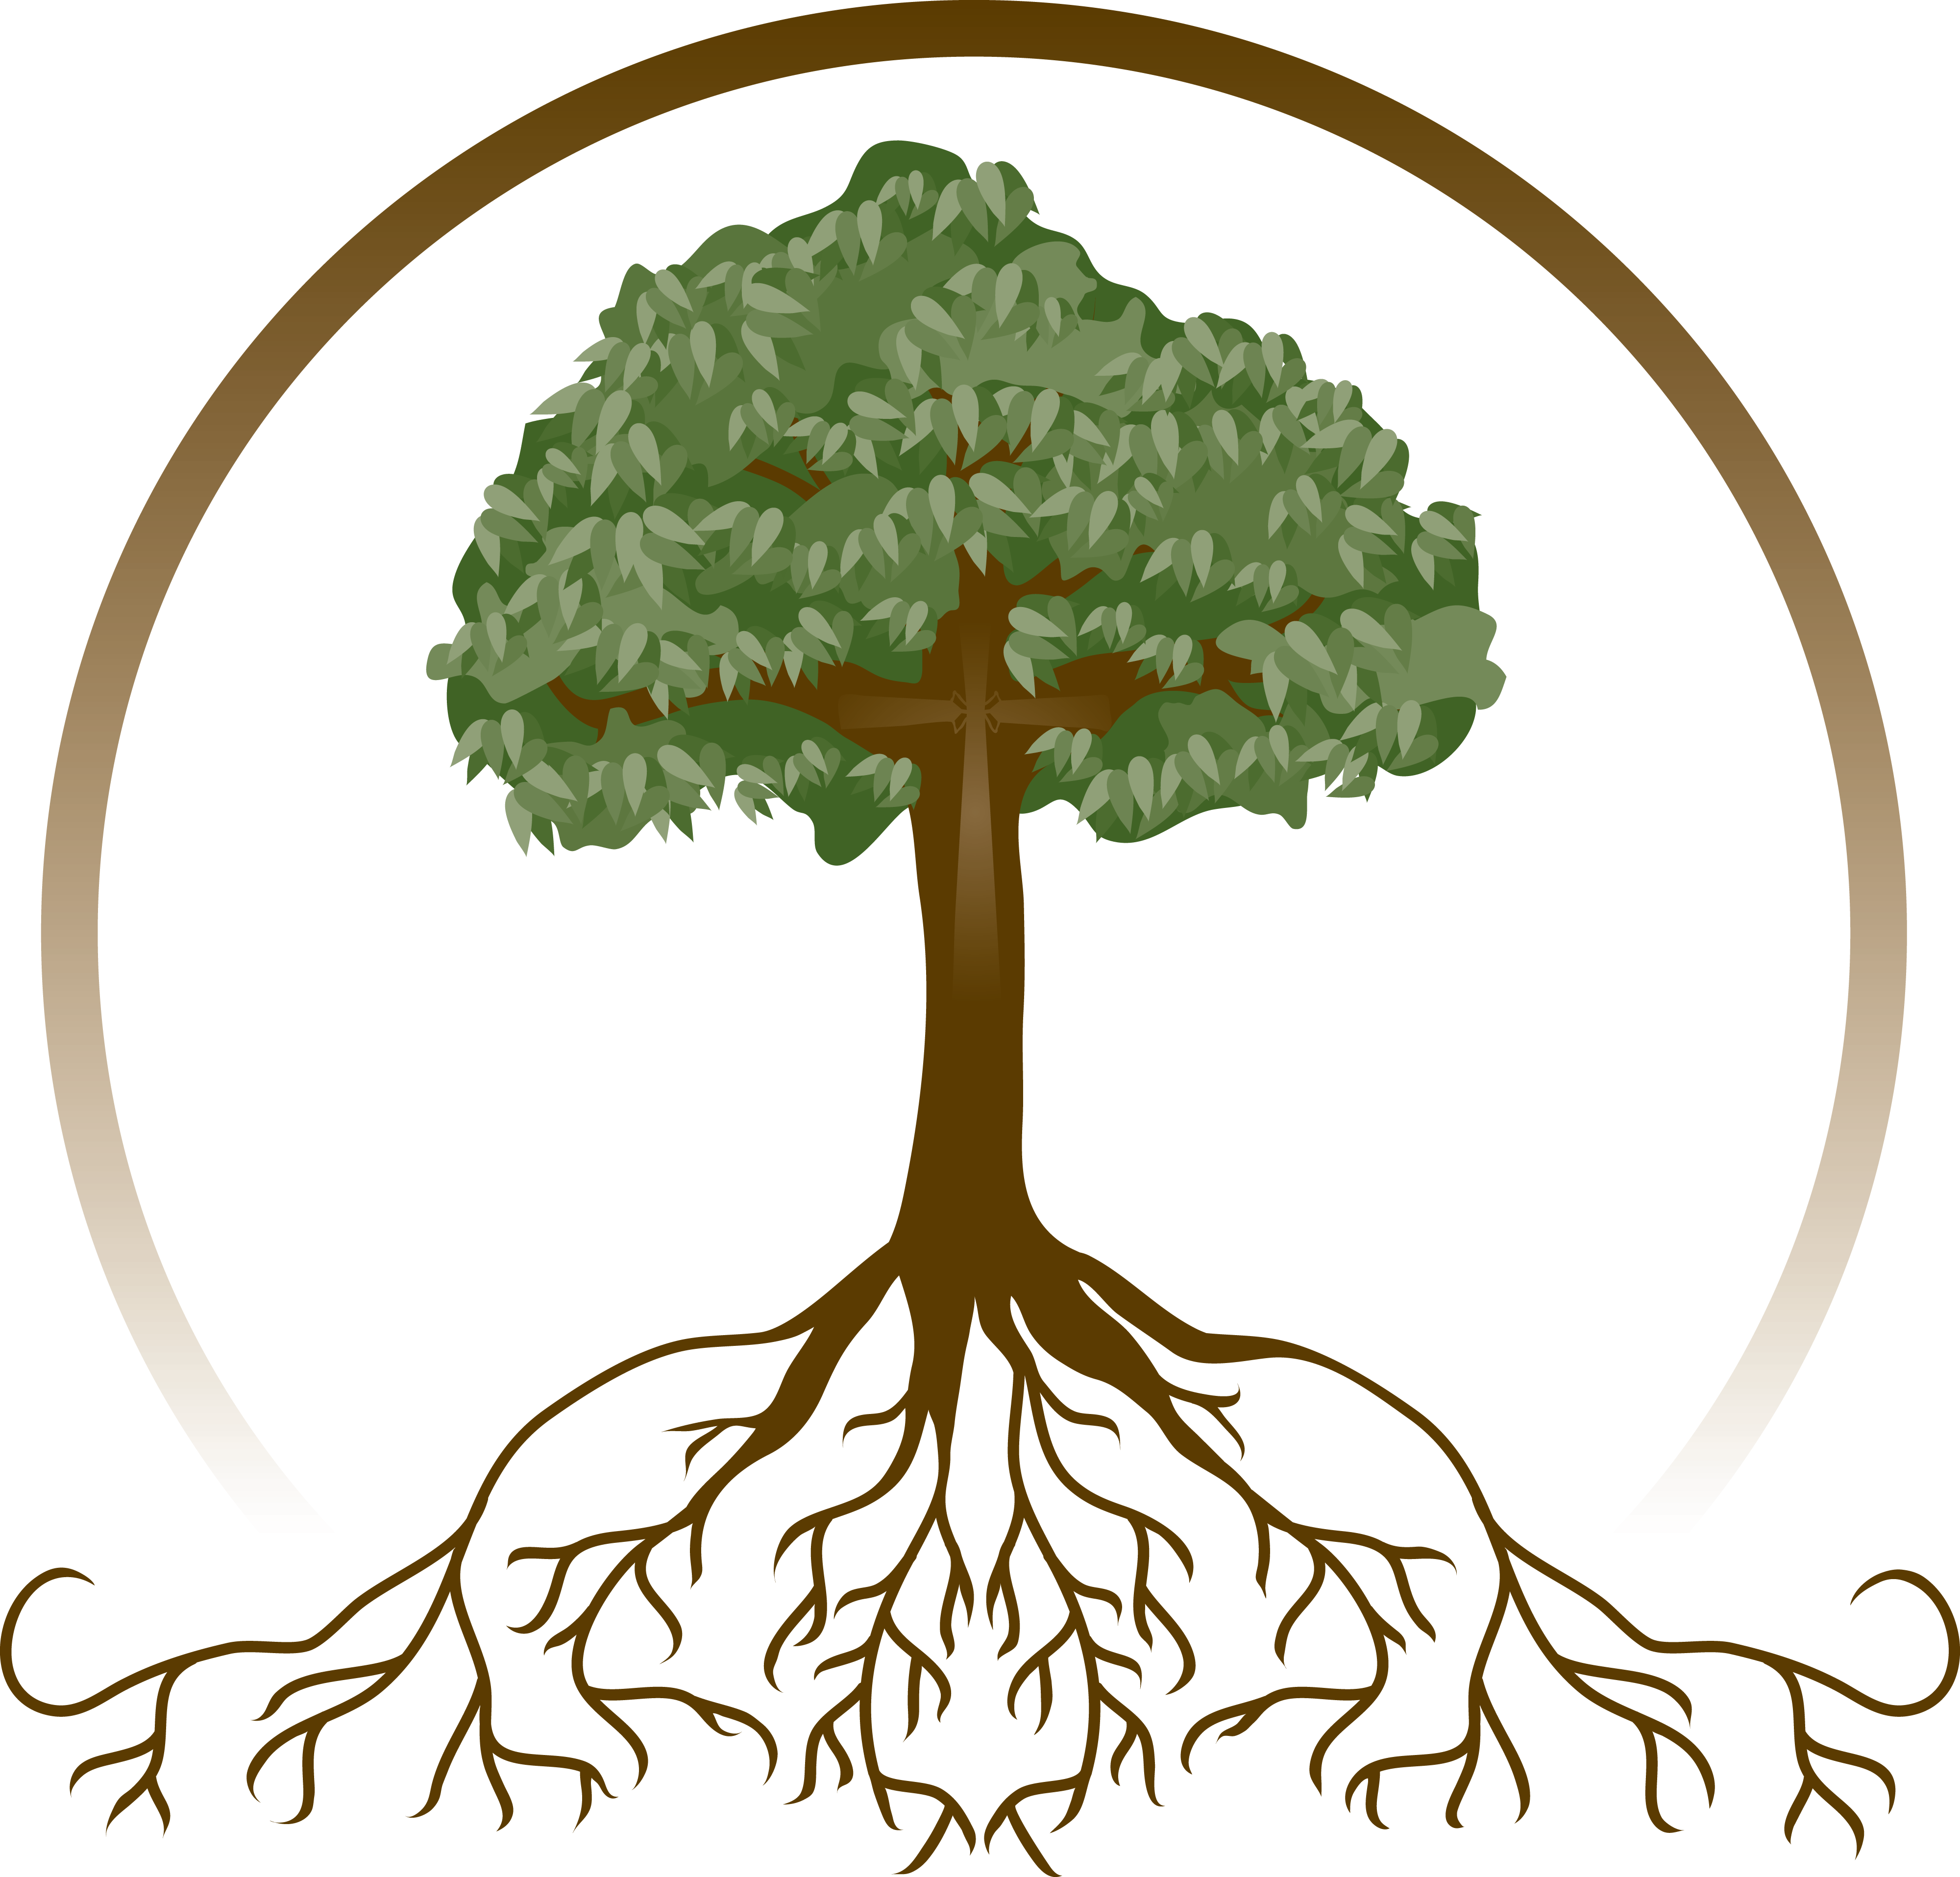 Deeply rooted faith in. Life clipart prayer tree